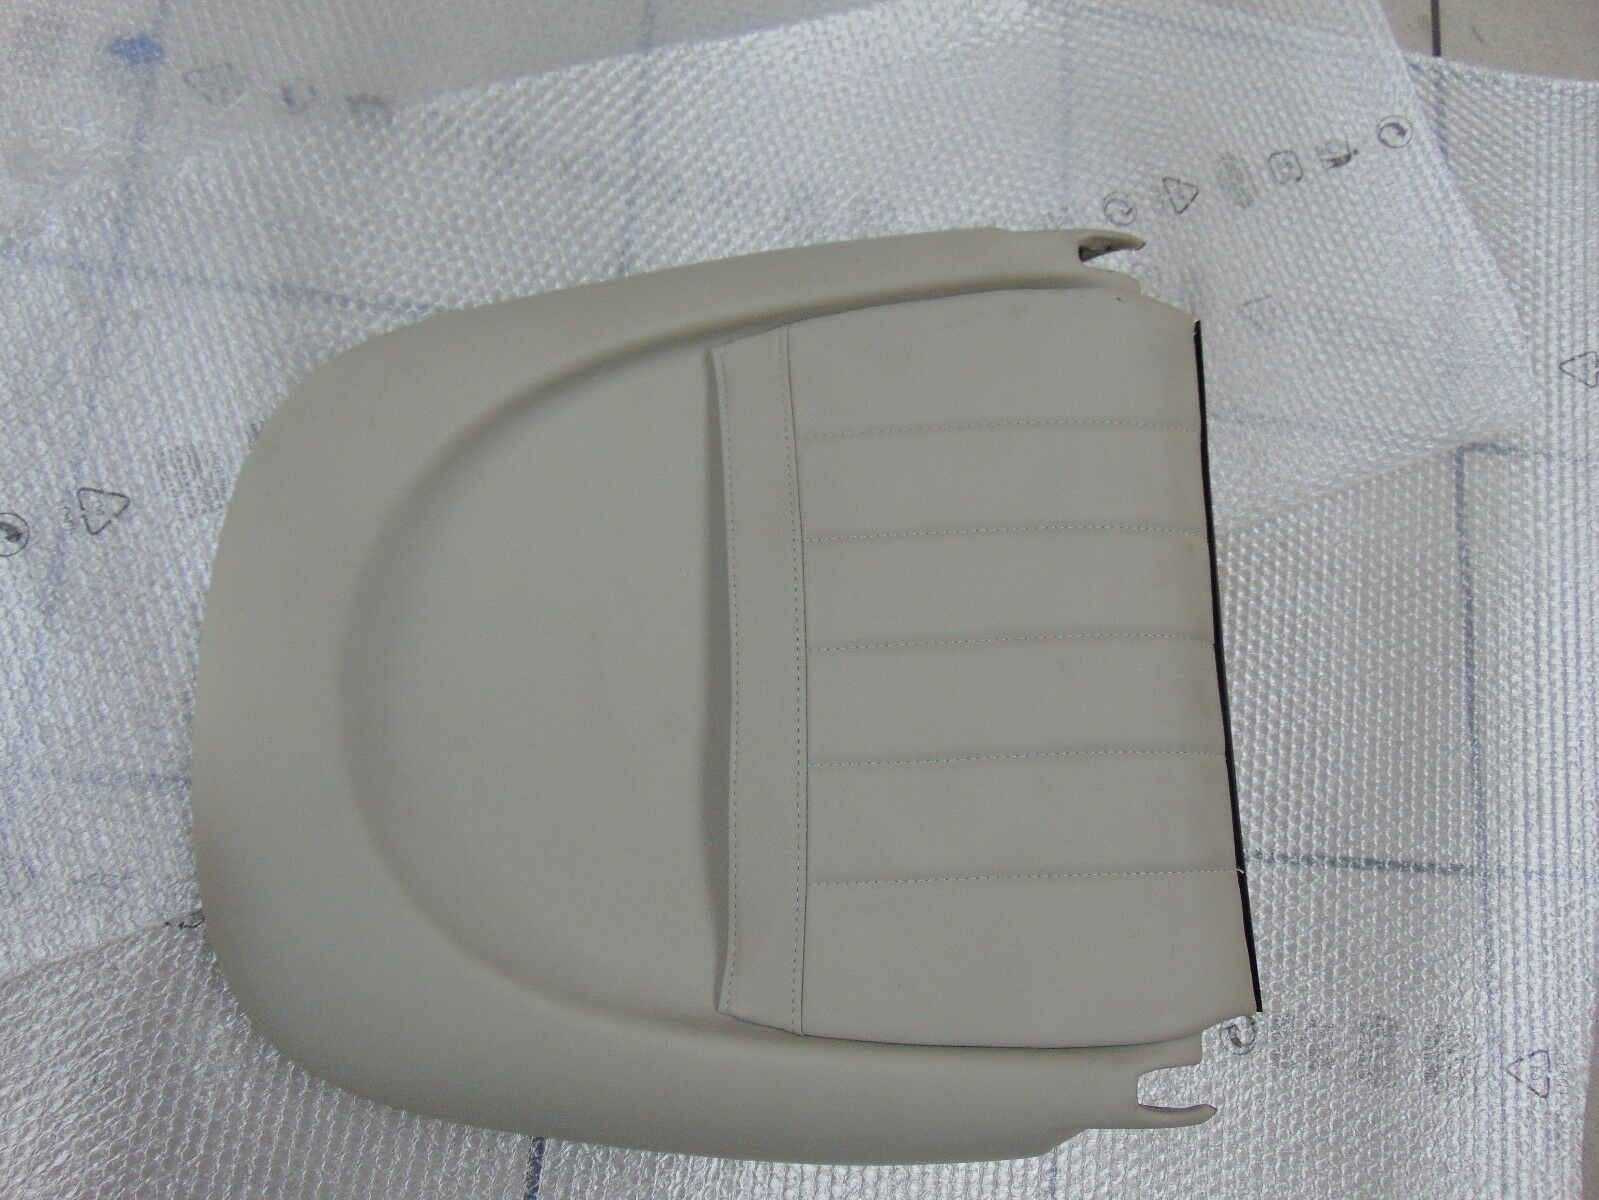 PANEL REAR SEAT FRONT RIGHT MASERATI 3200 GT 9810048